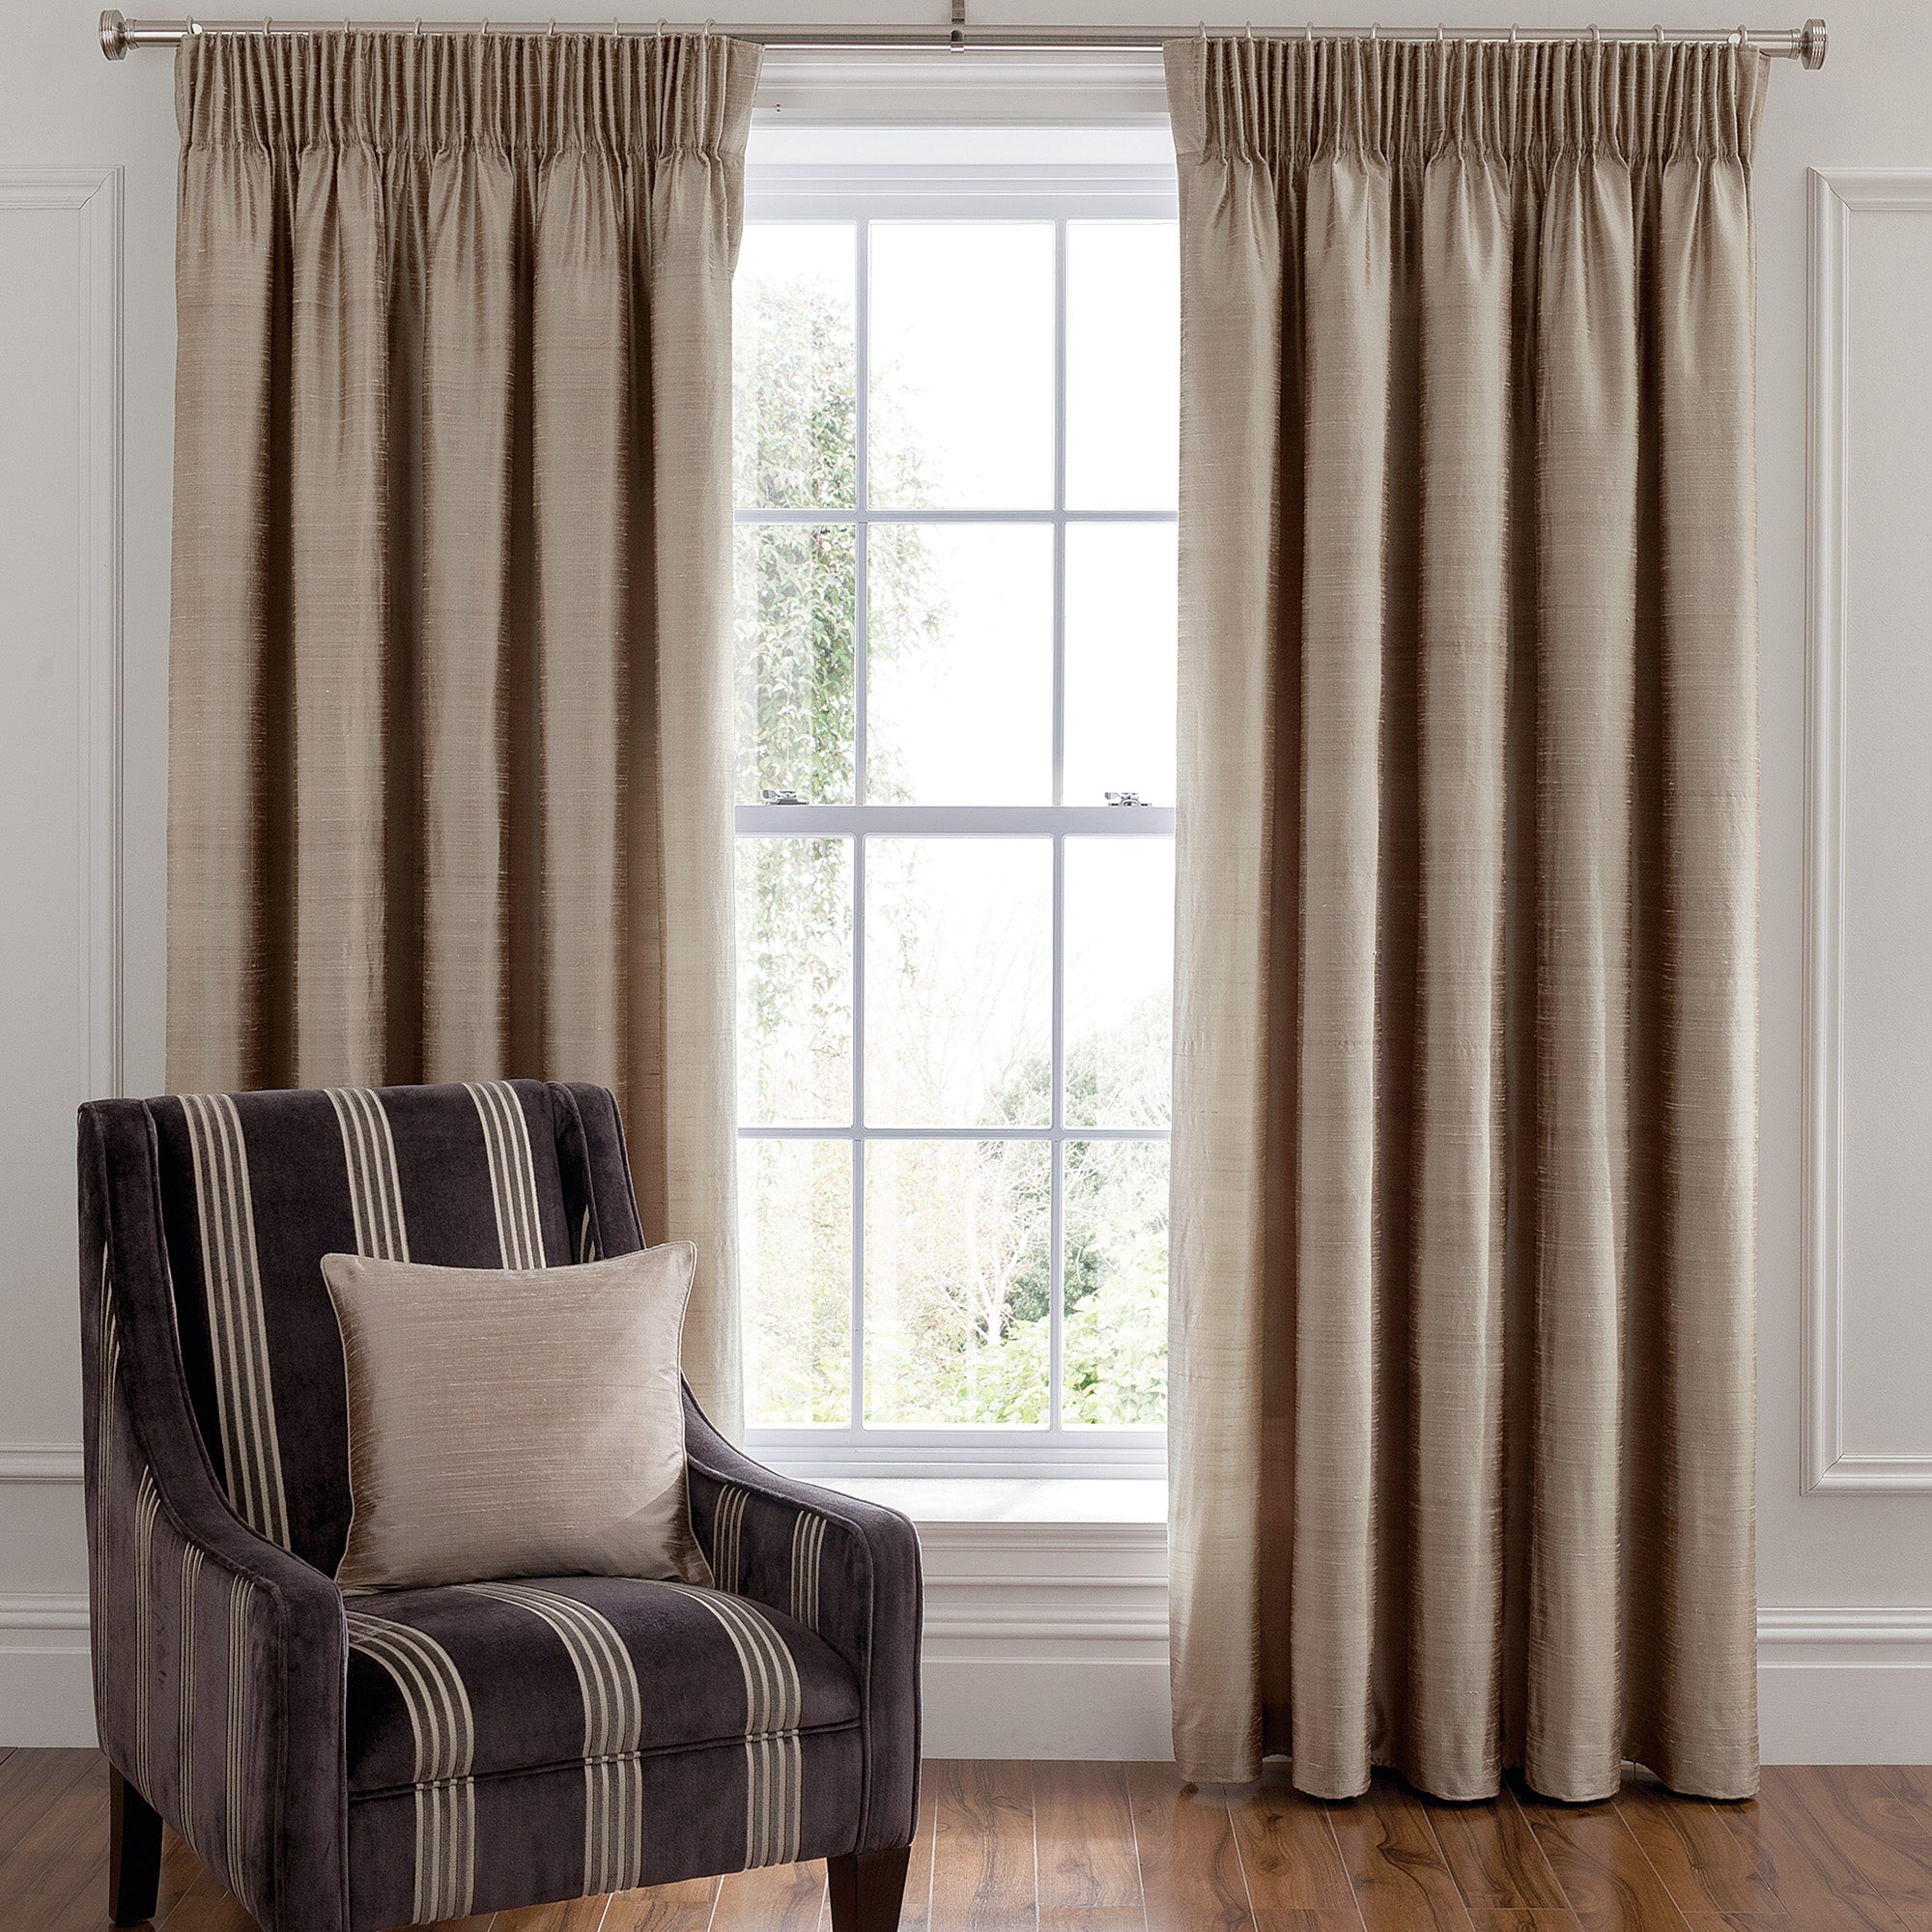 Dorma Mink Beresford Lined Pencil Pleat Curtains